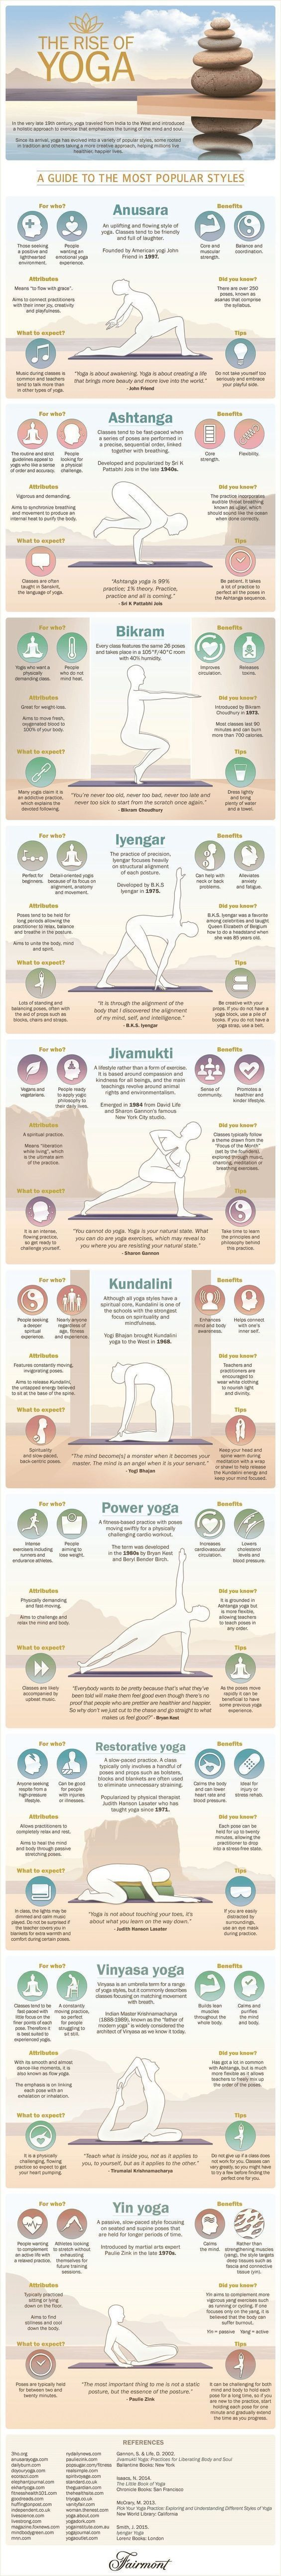 Yoga got your head spinning? A quick guide to which type might be your perfect match. | Fit Bottomed Girls Get the best of yoga poses and position for quick weight loss and fit body. Click here to learn more - http://fitnesssnap.com